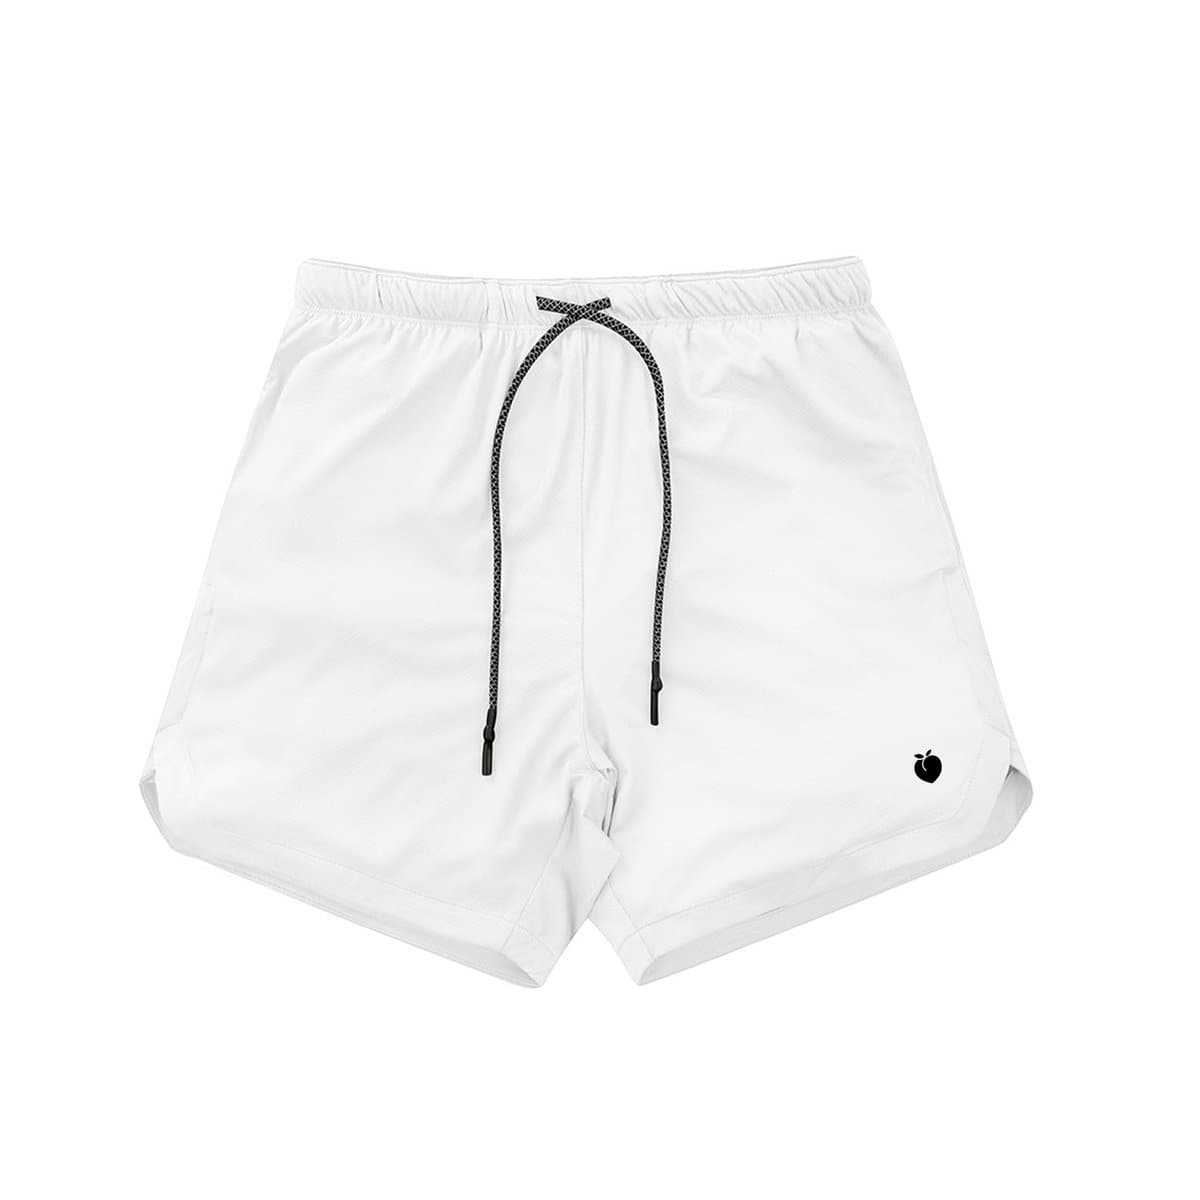 Men's Linerless Active Shorts - White